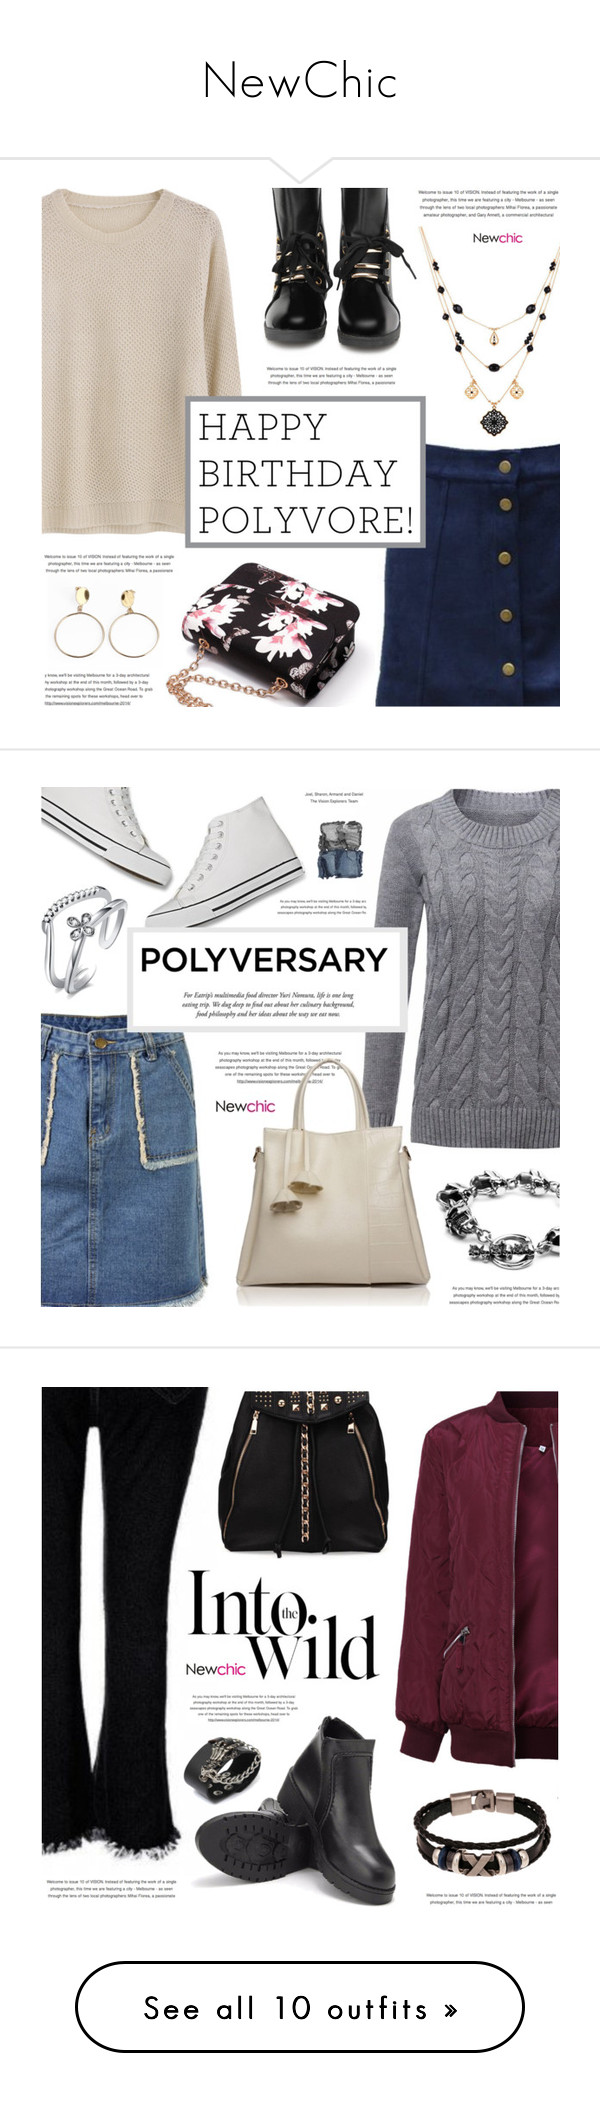 """NewChic"" by defivirda ❤ liked on Polyvore featuring polyversary, contestentry, NARS Cosmetics, Anja, Leatherock, Bebe and beauty"